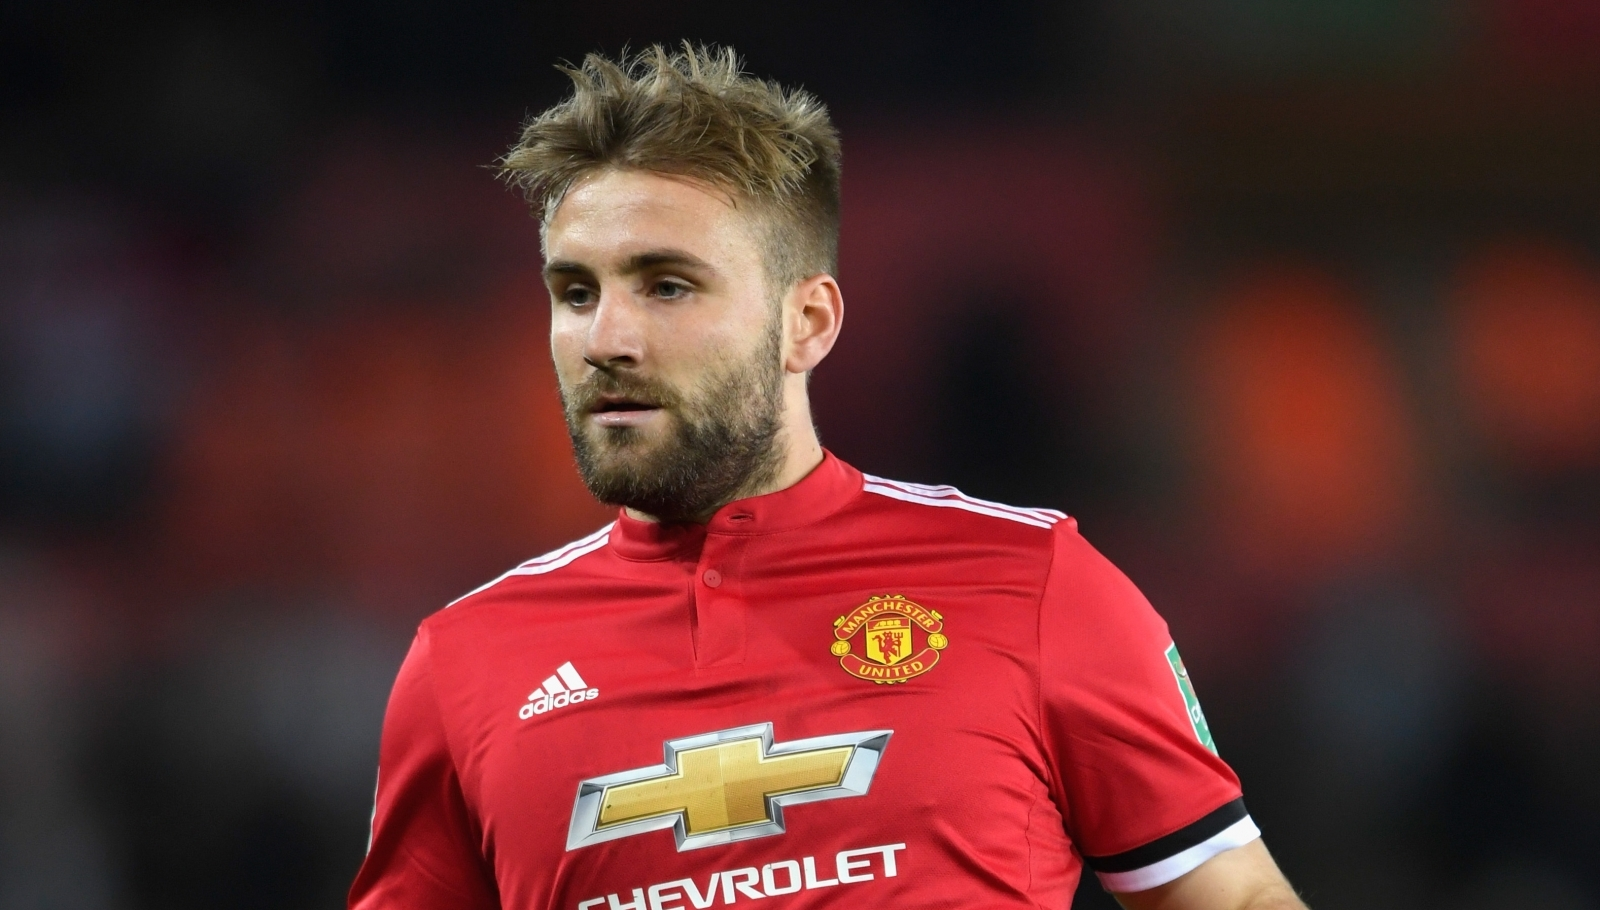 Manchester United: Luke Shaw Urged To Take Pay Cut And